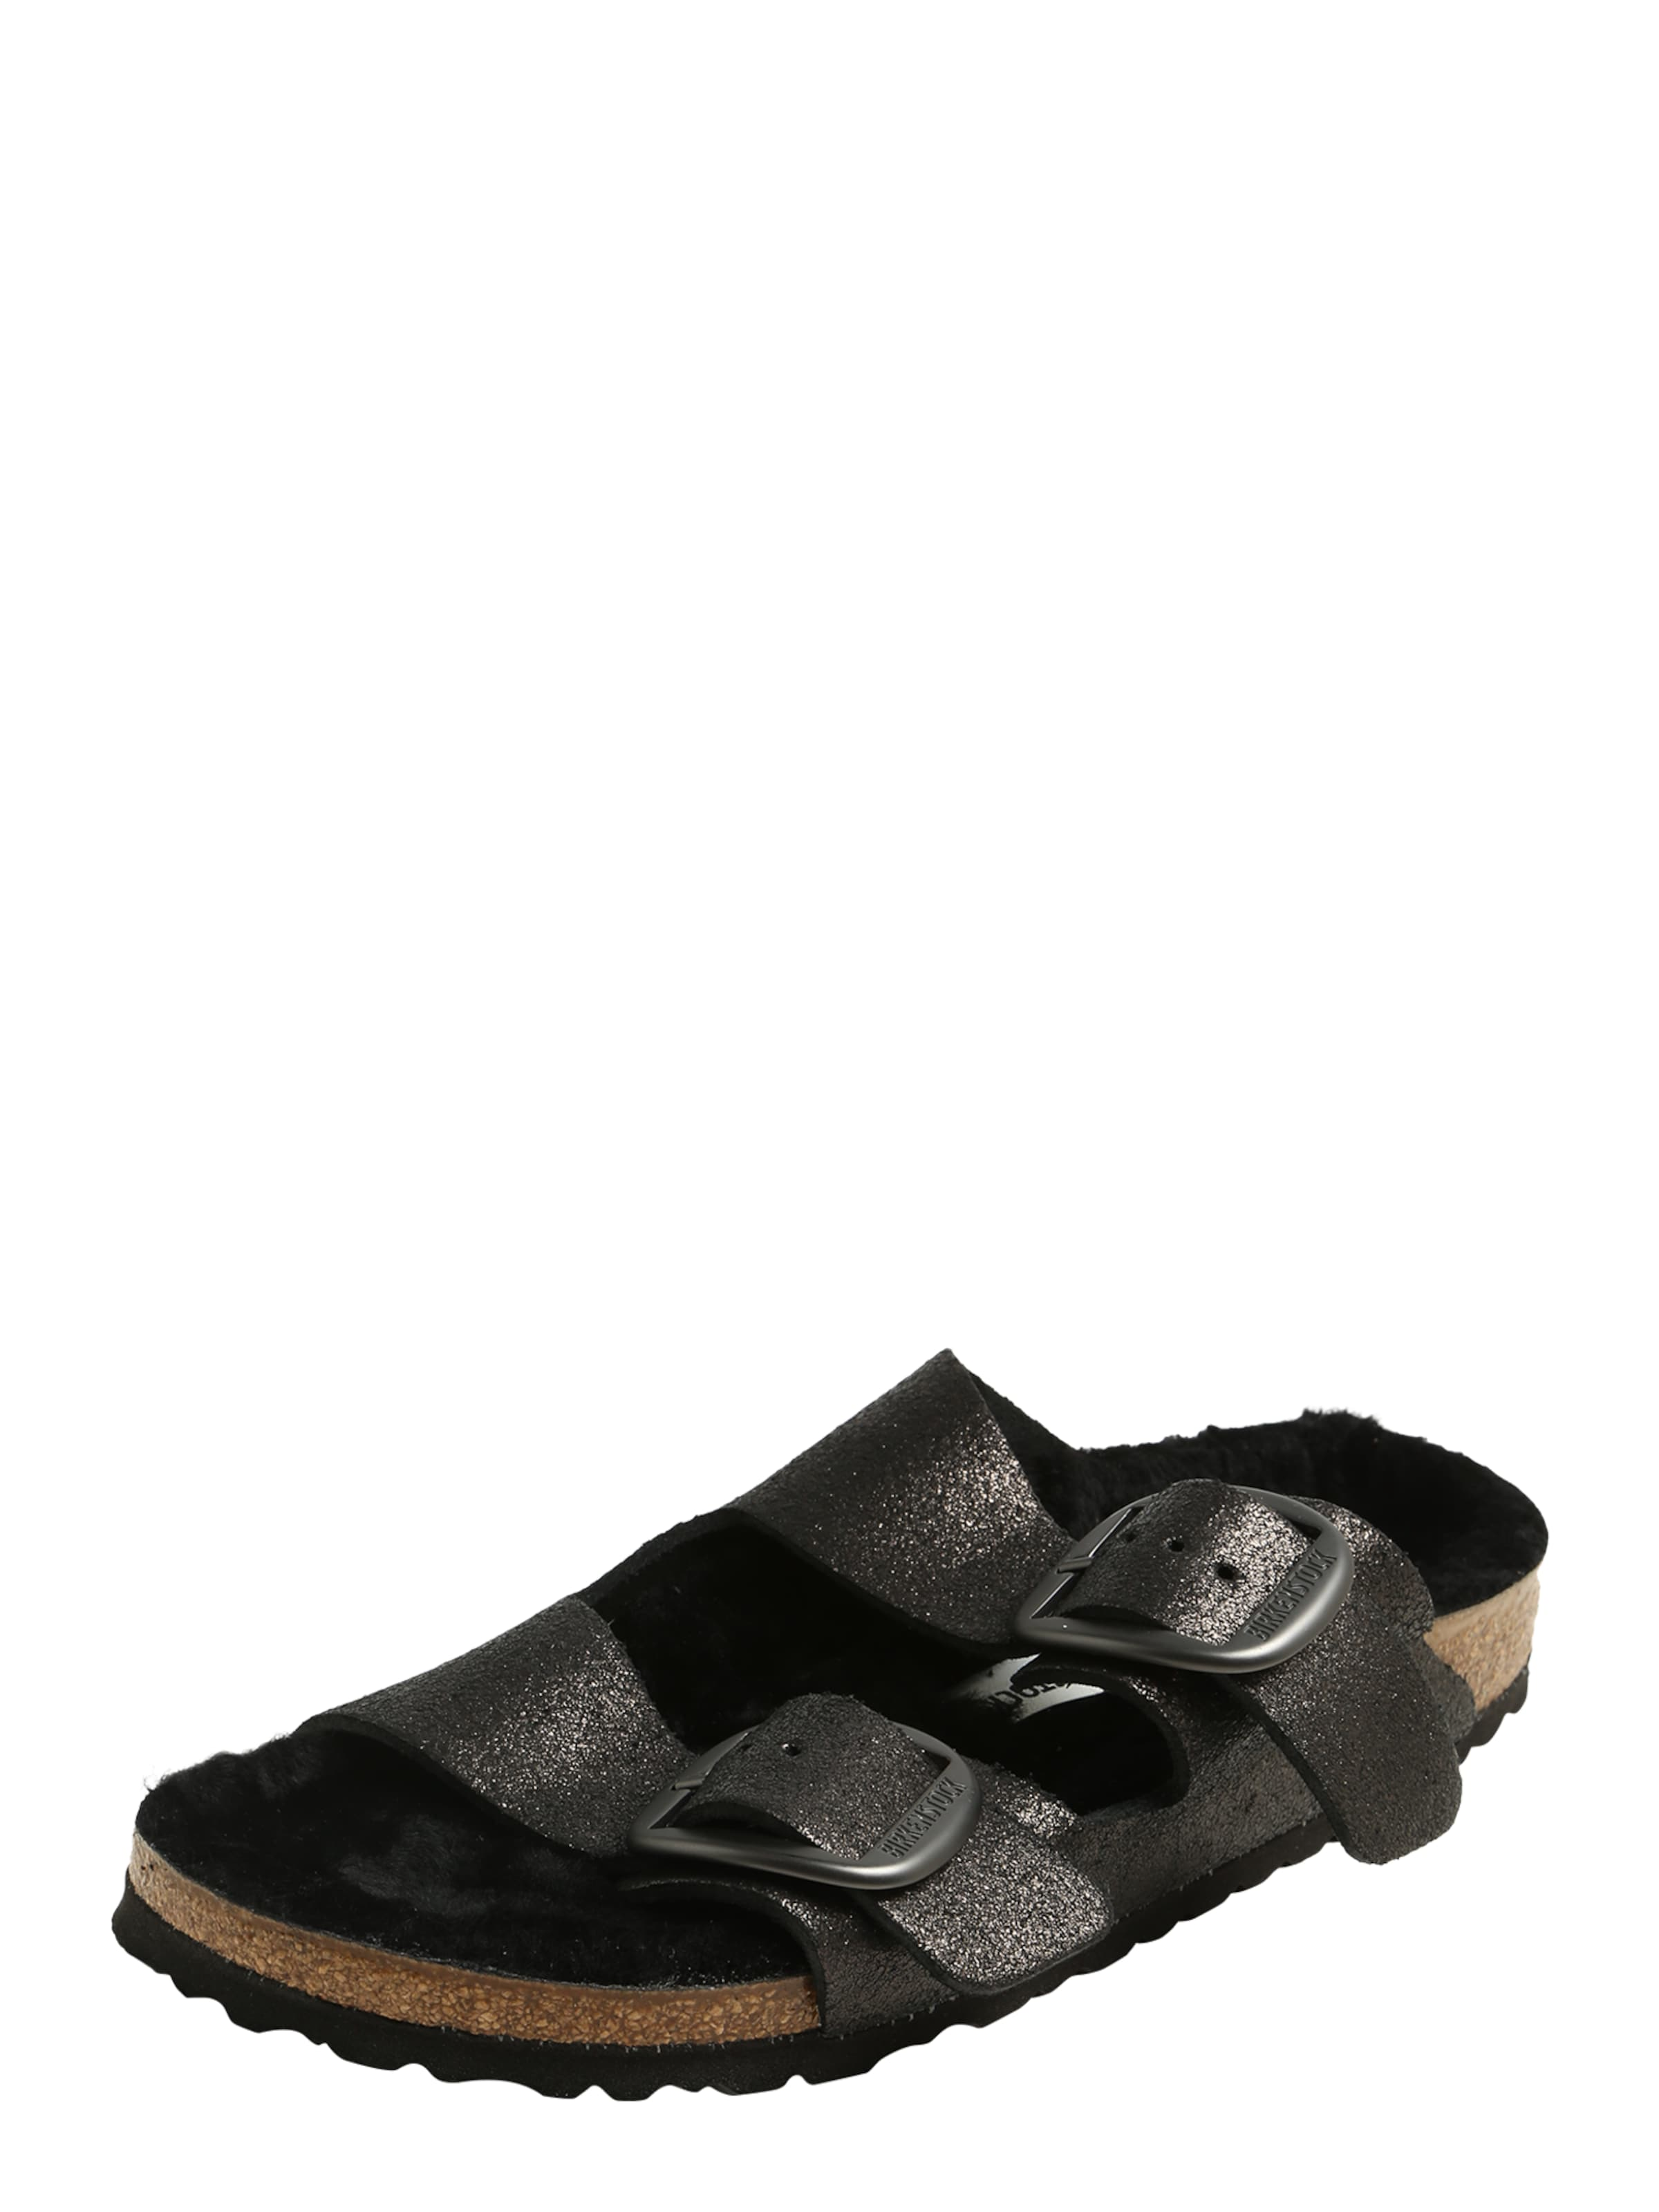 'arizona Big Schwarz Birkenstock In Pantoletten Buckle' 80OnPwk